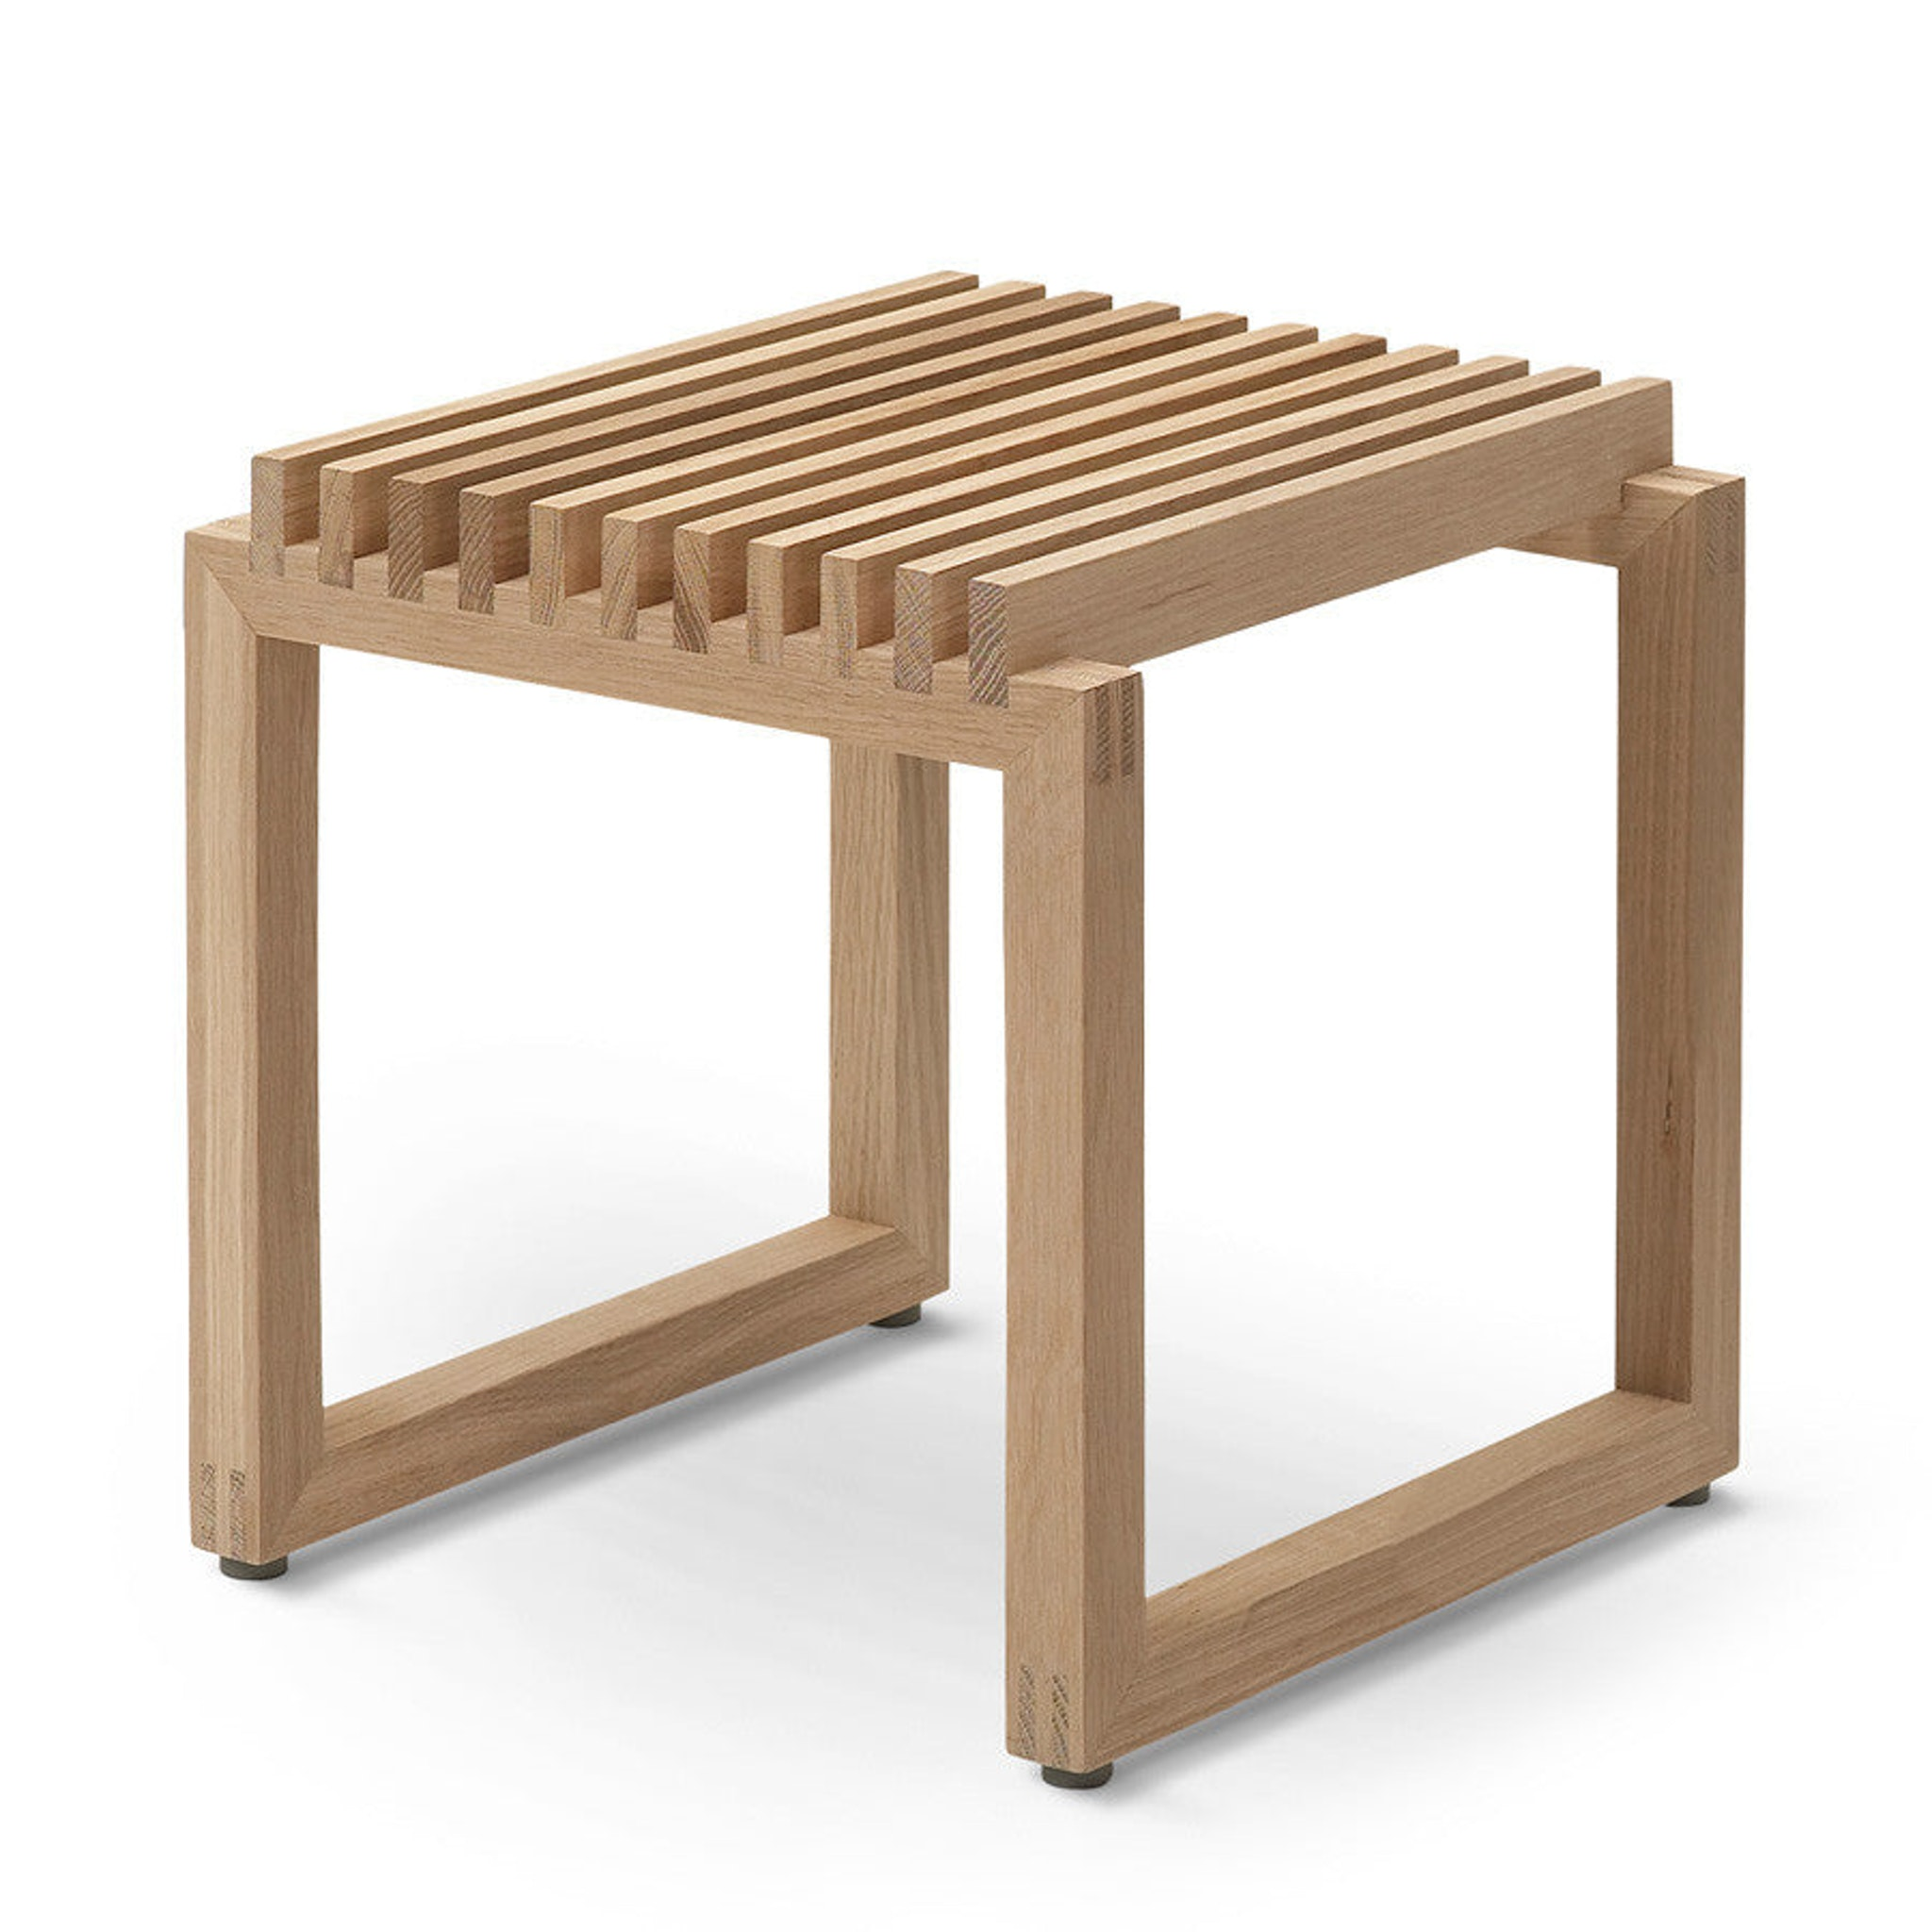 Cutter Stool by Niels Hvass